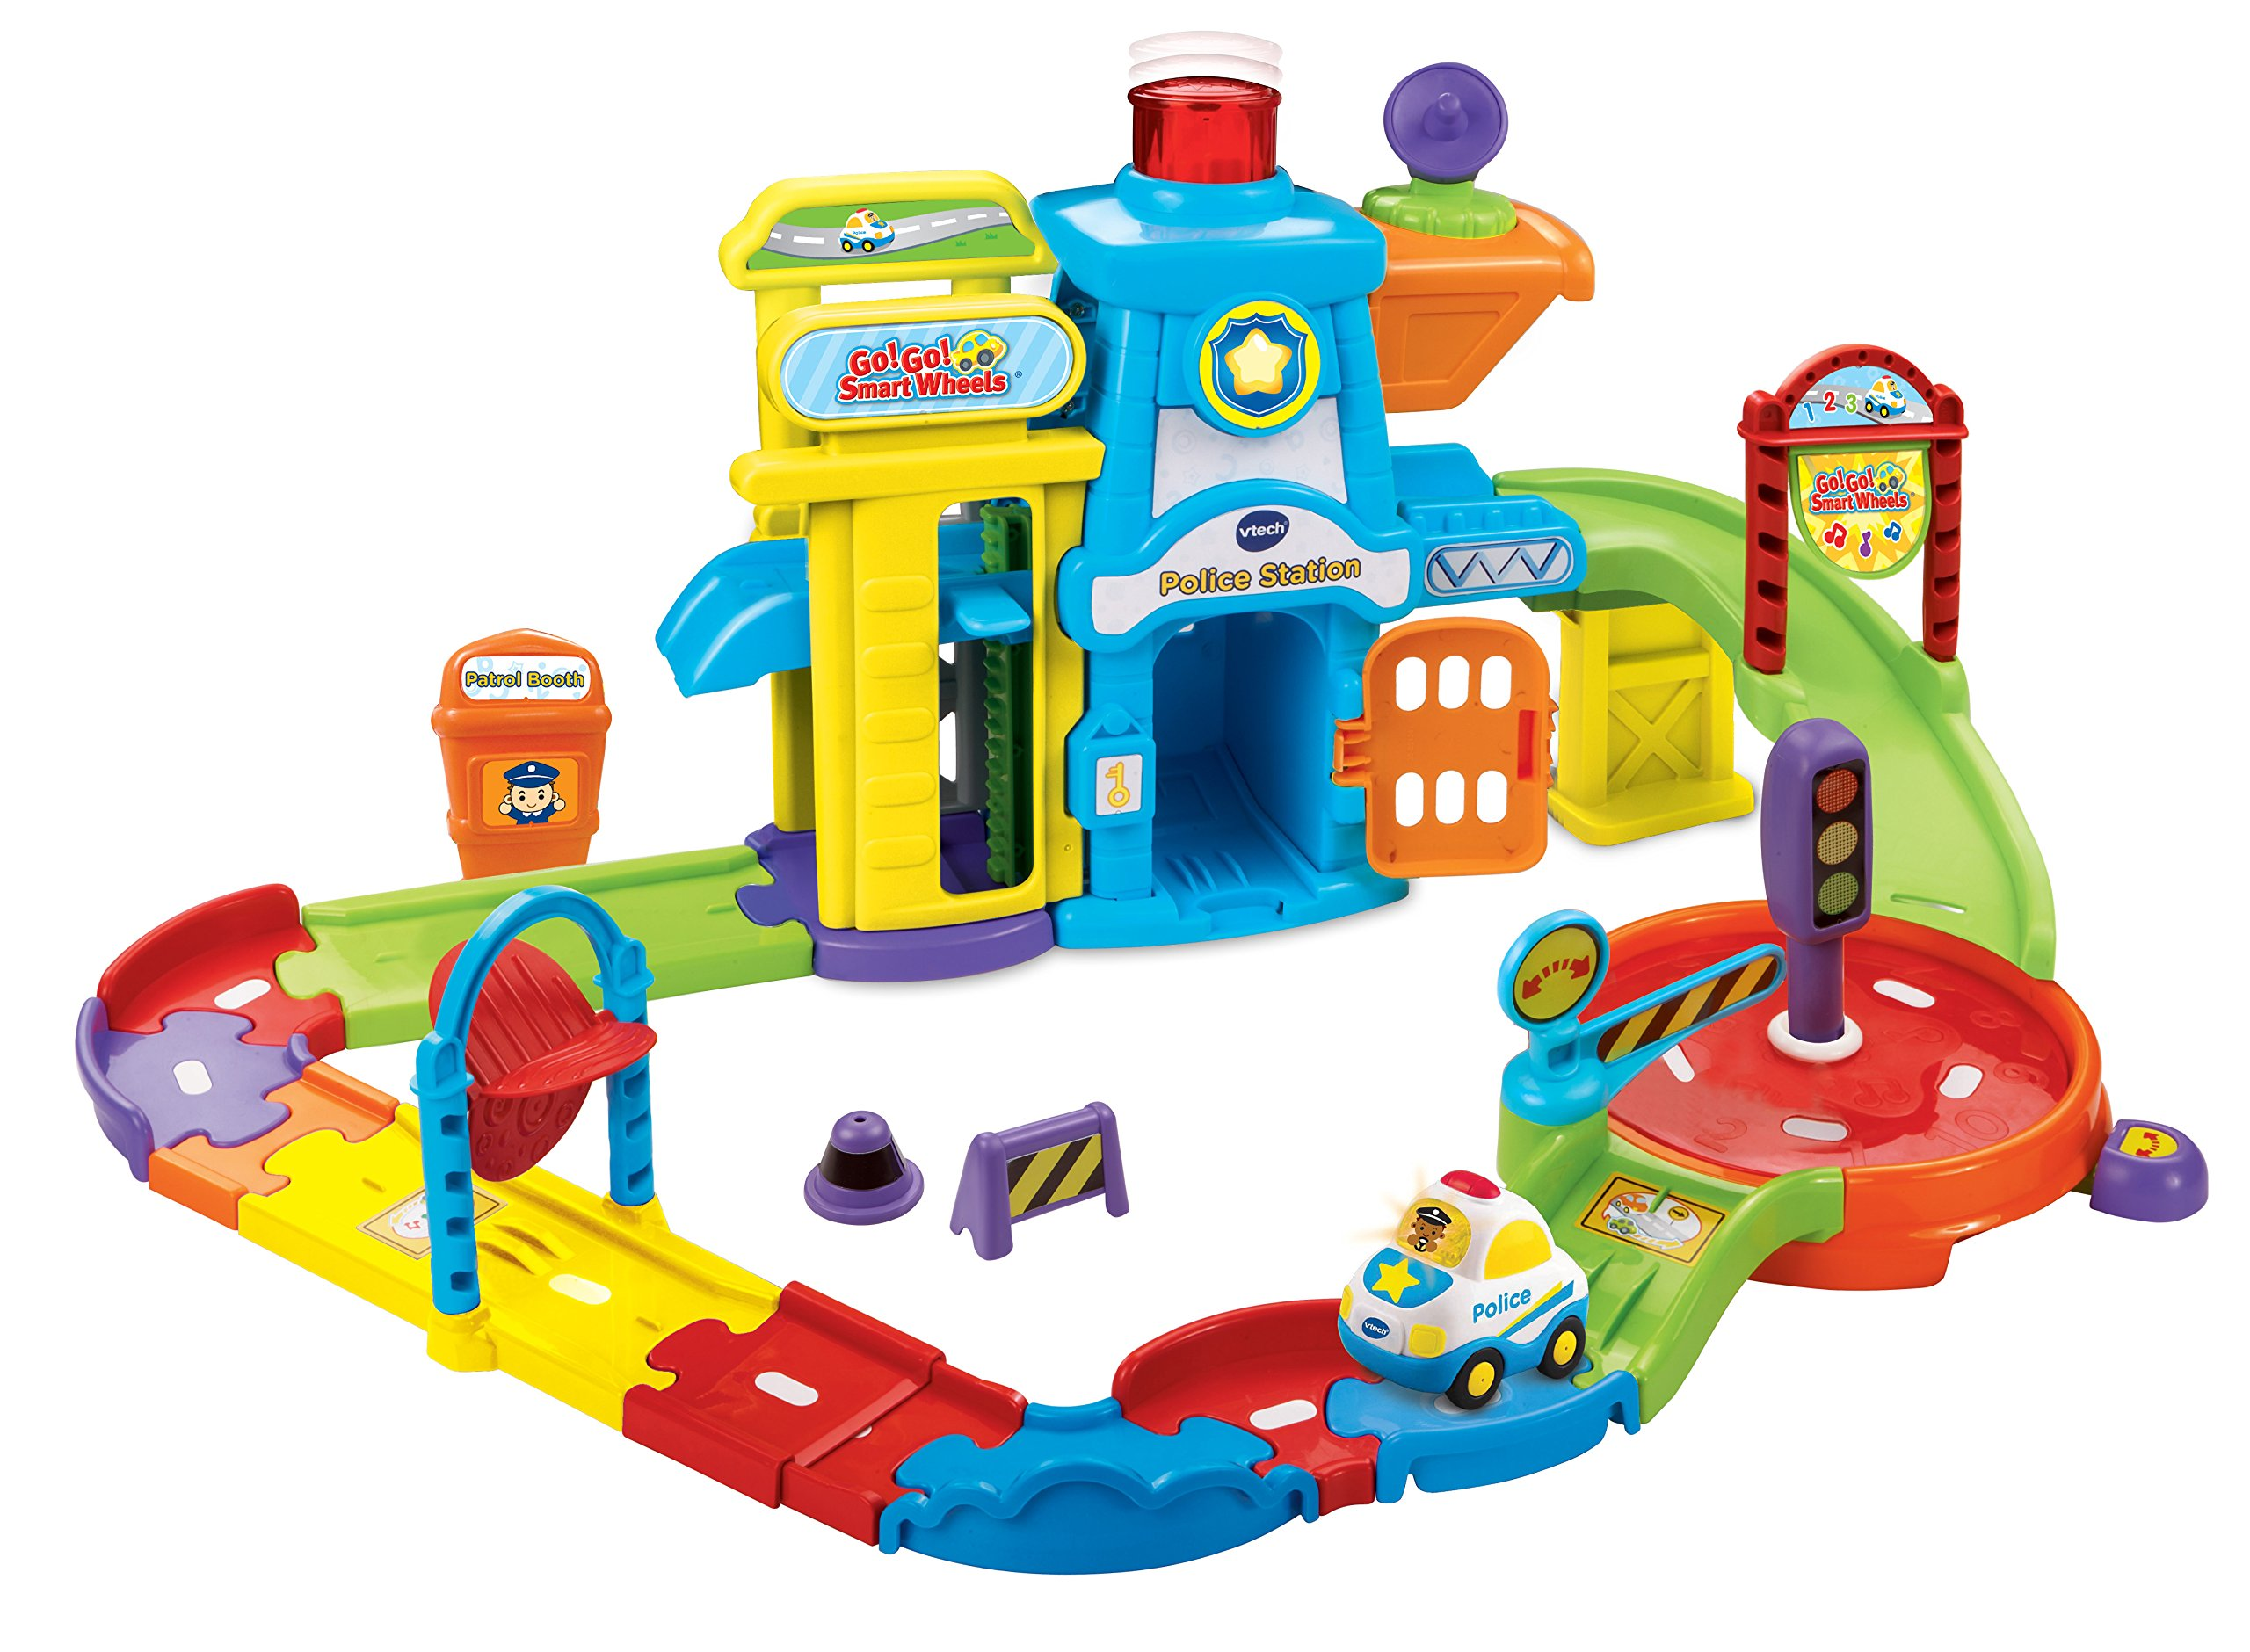 Vtech Go Go Smart Wheels Police Station Playset Vtech